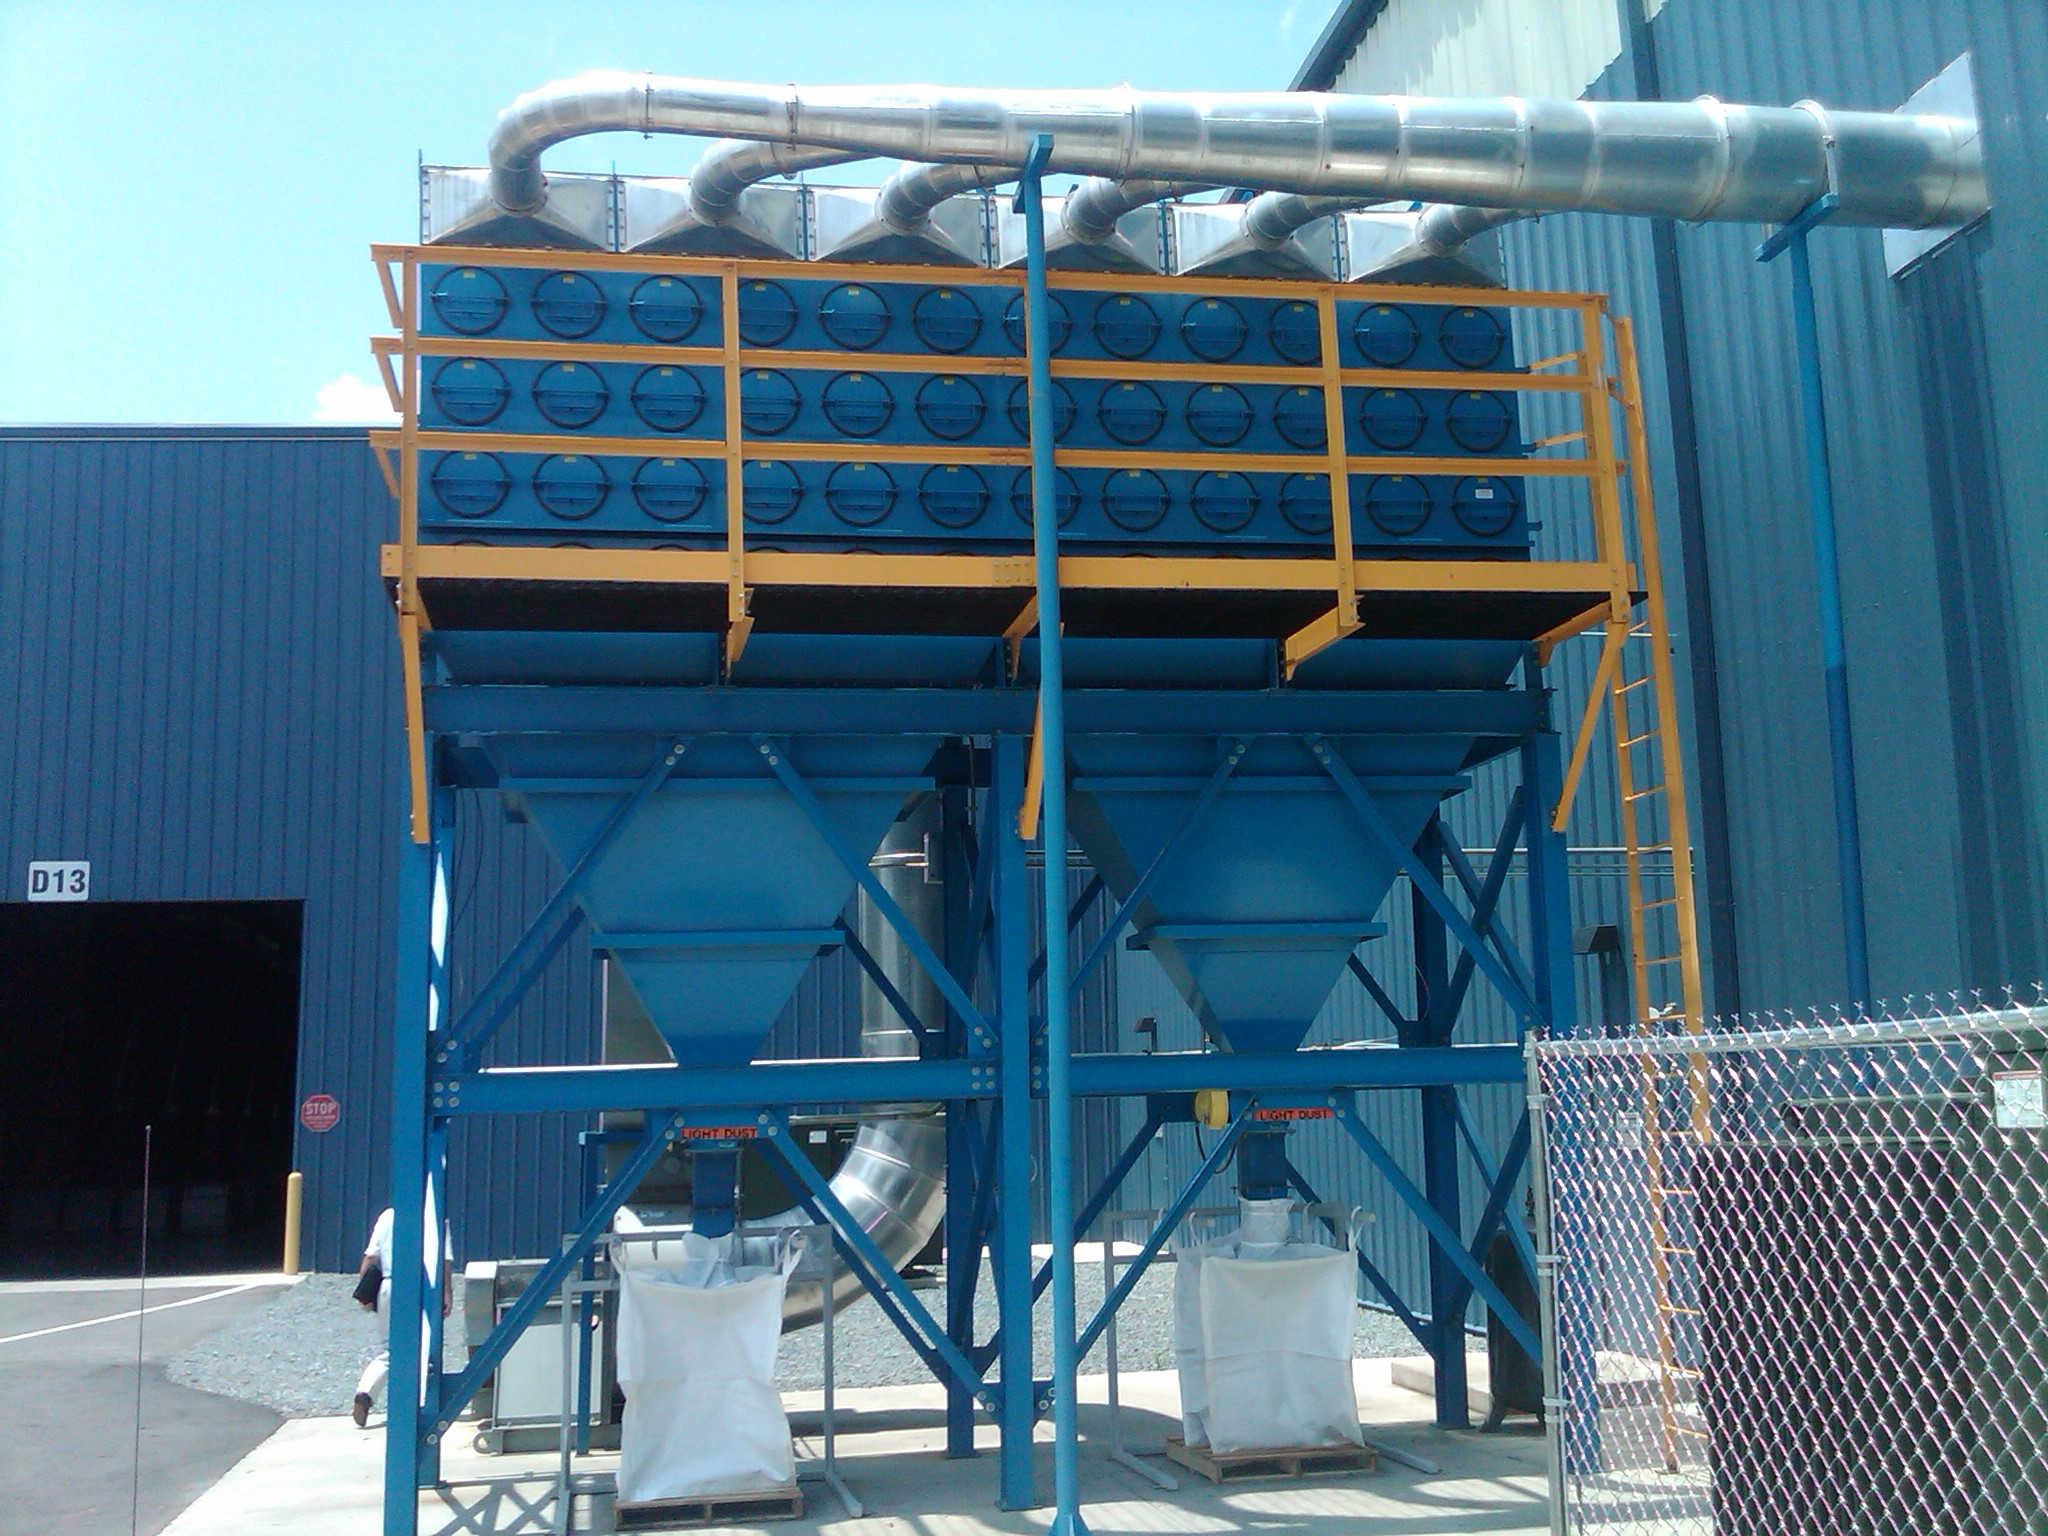 Whitlock Industrial Equipment supplies a wide range of Dust Collectors and Scrubbers